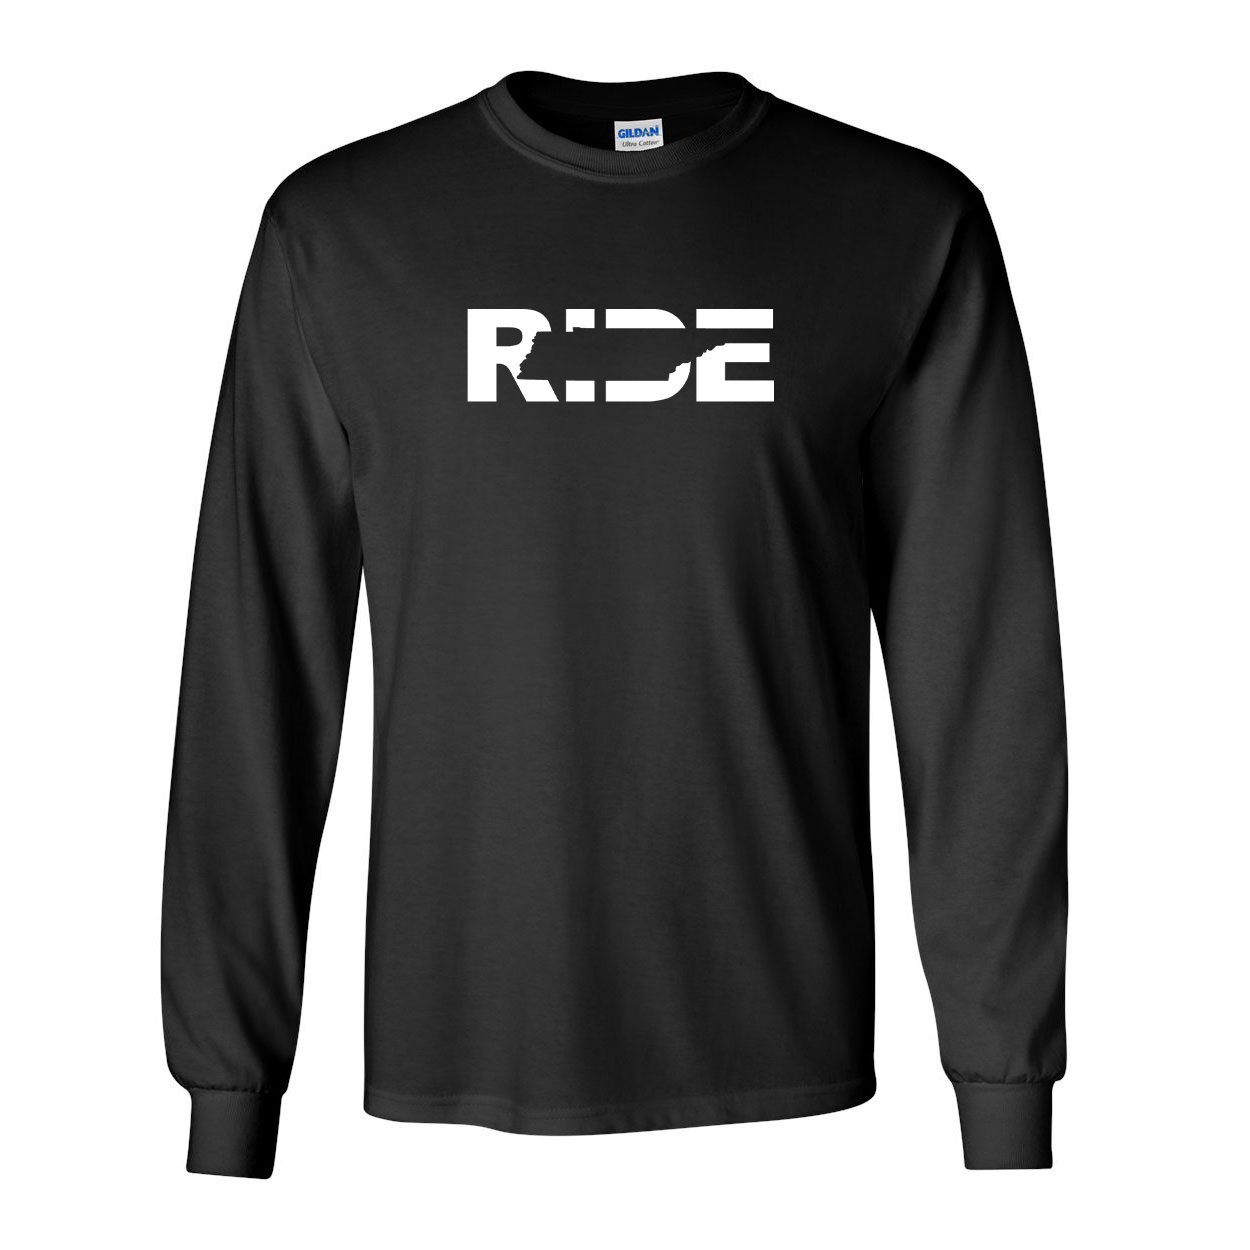 Ride Tennessee Classic Long Sleeve T-Shirt Black (White Logo)